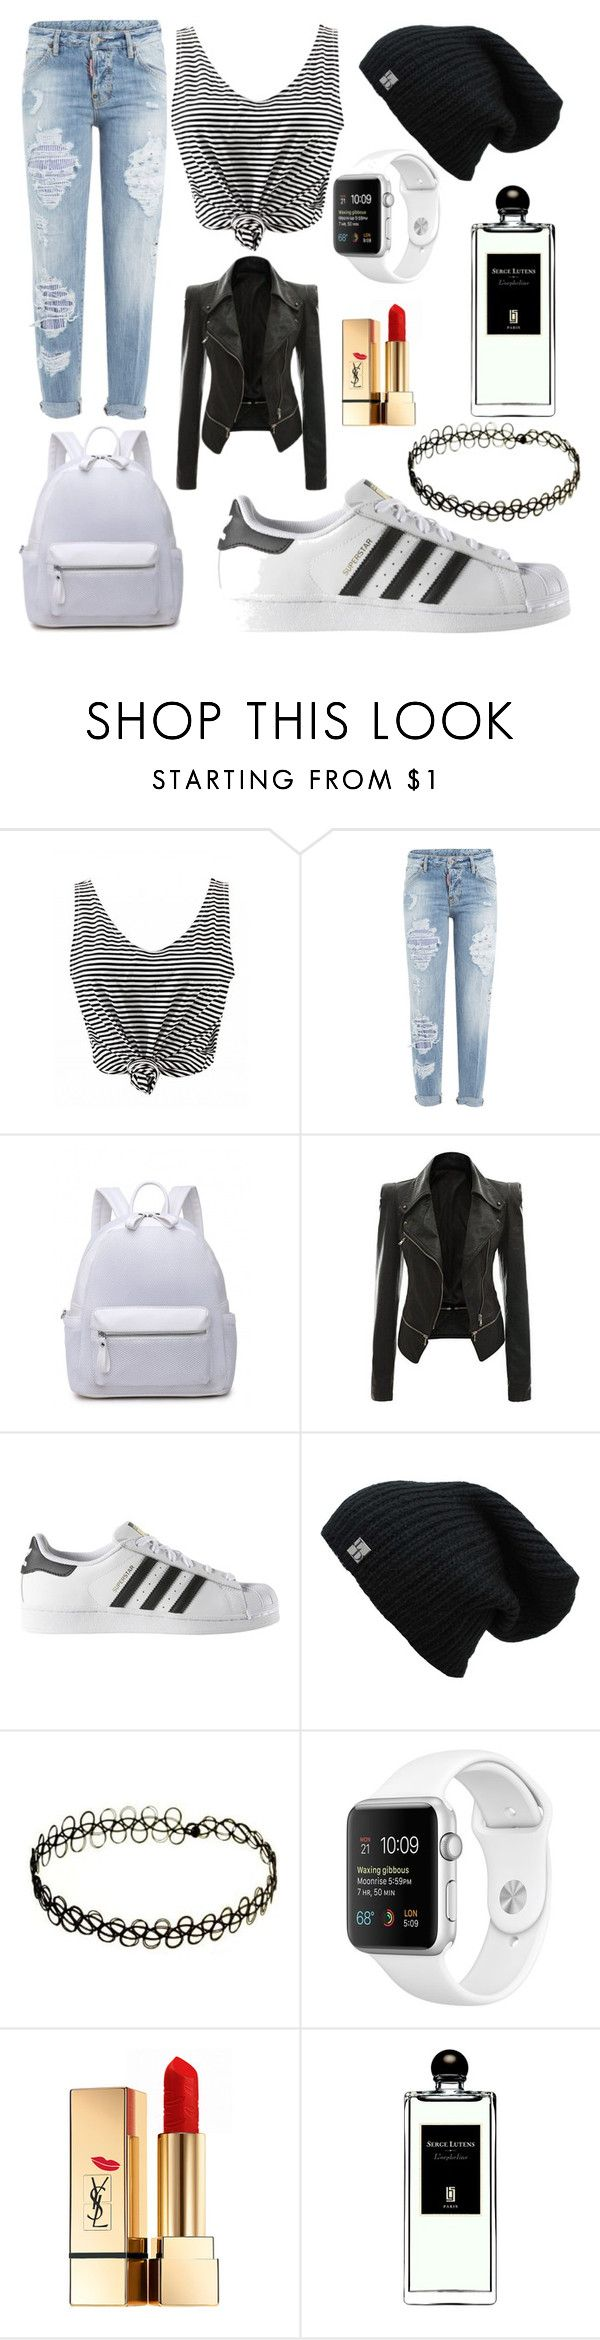 """boyish?"" by beatrigitaa on Polyvore featuring Dsquared2, adidas, Yves Saint Laurent and Serge Lutens"